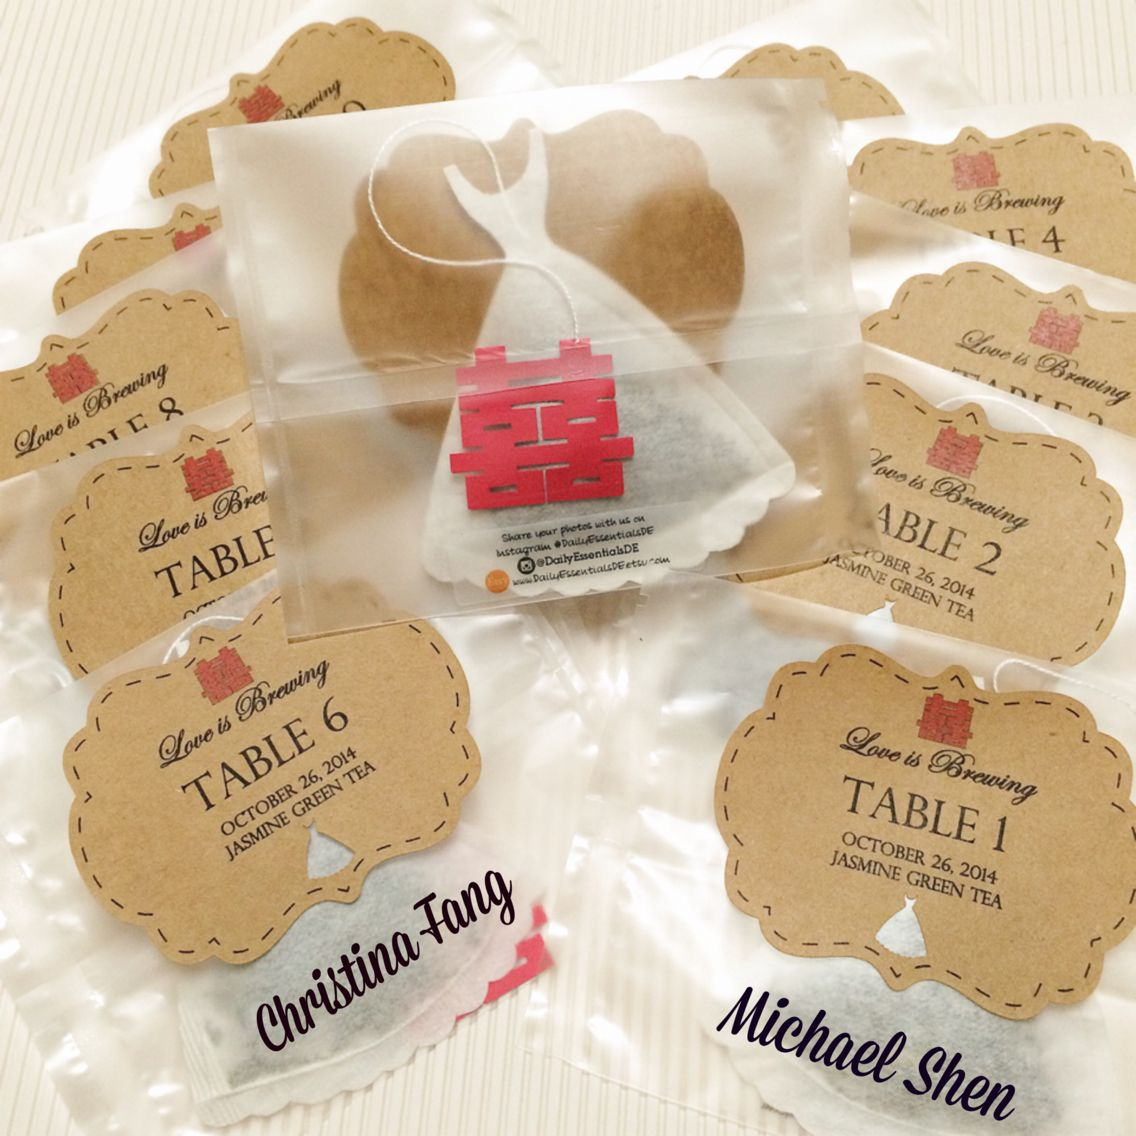 These wedding table place card tea bags are a first